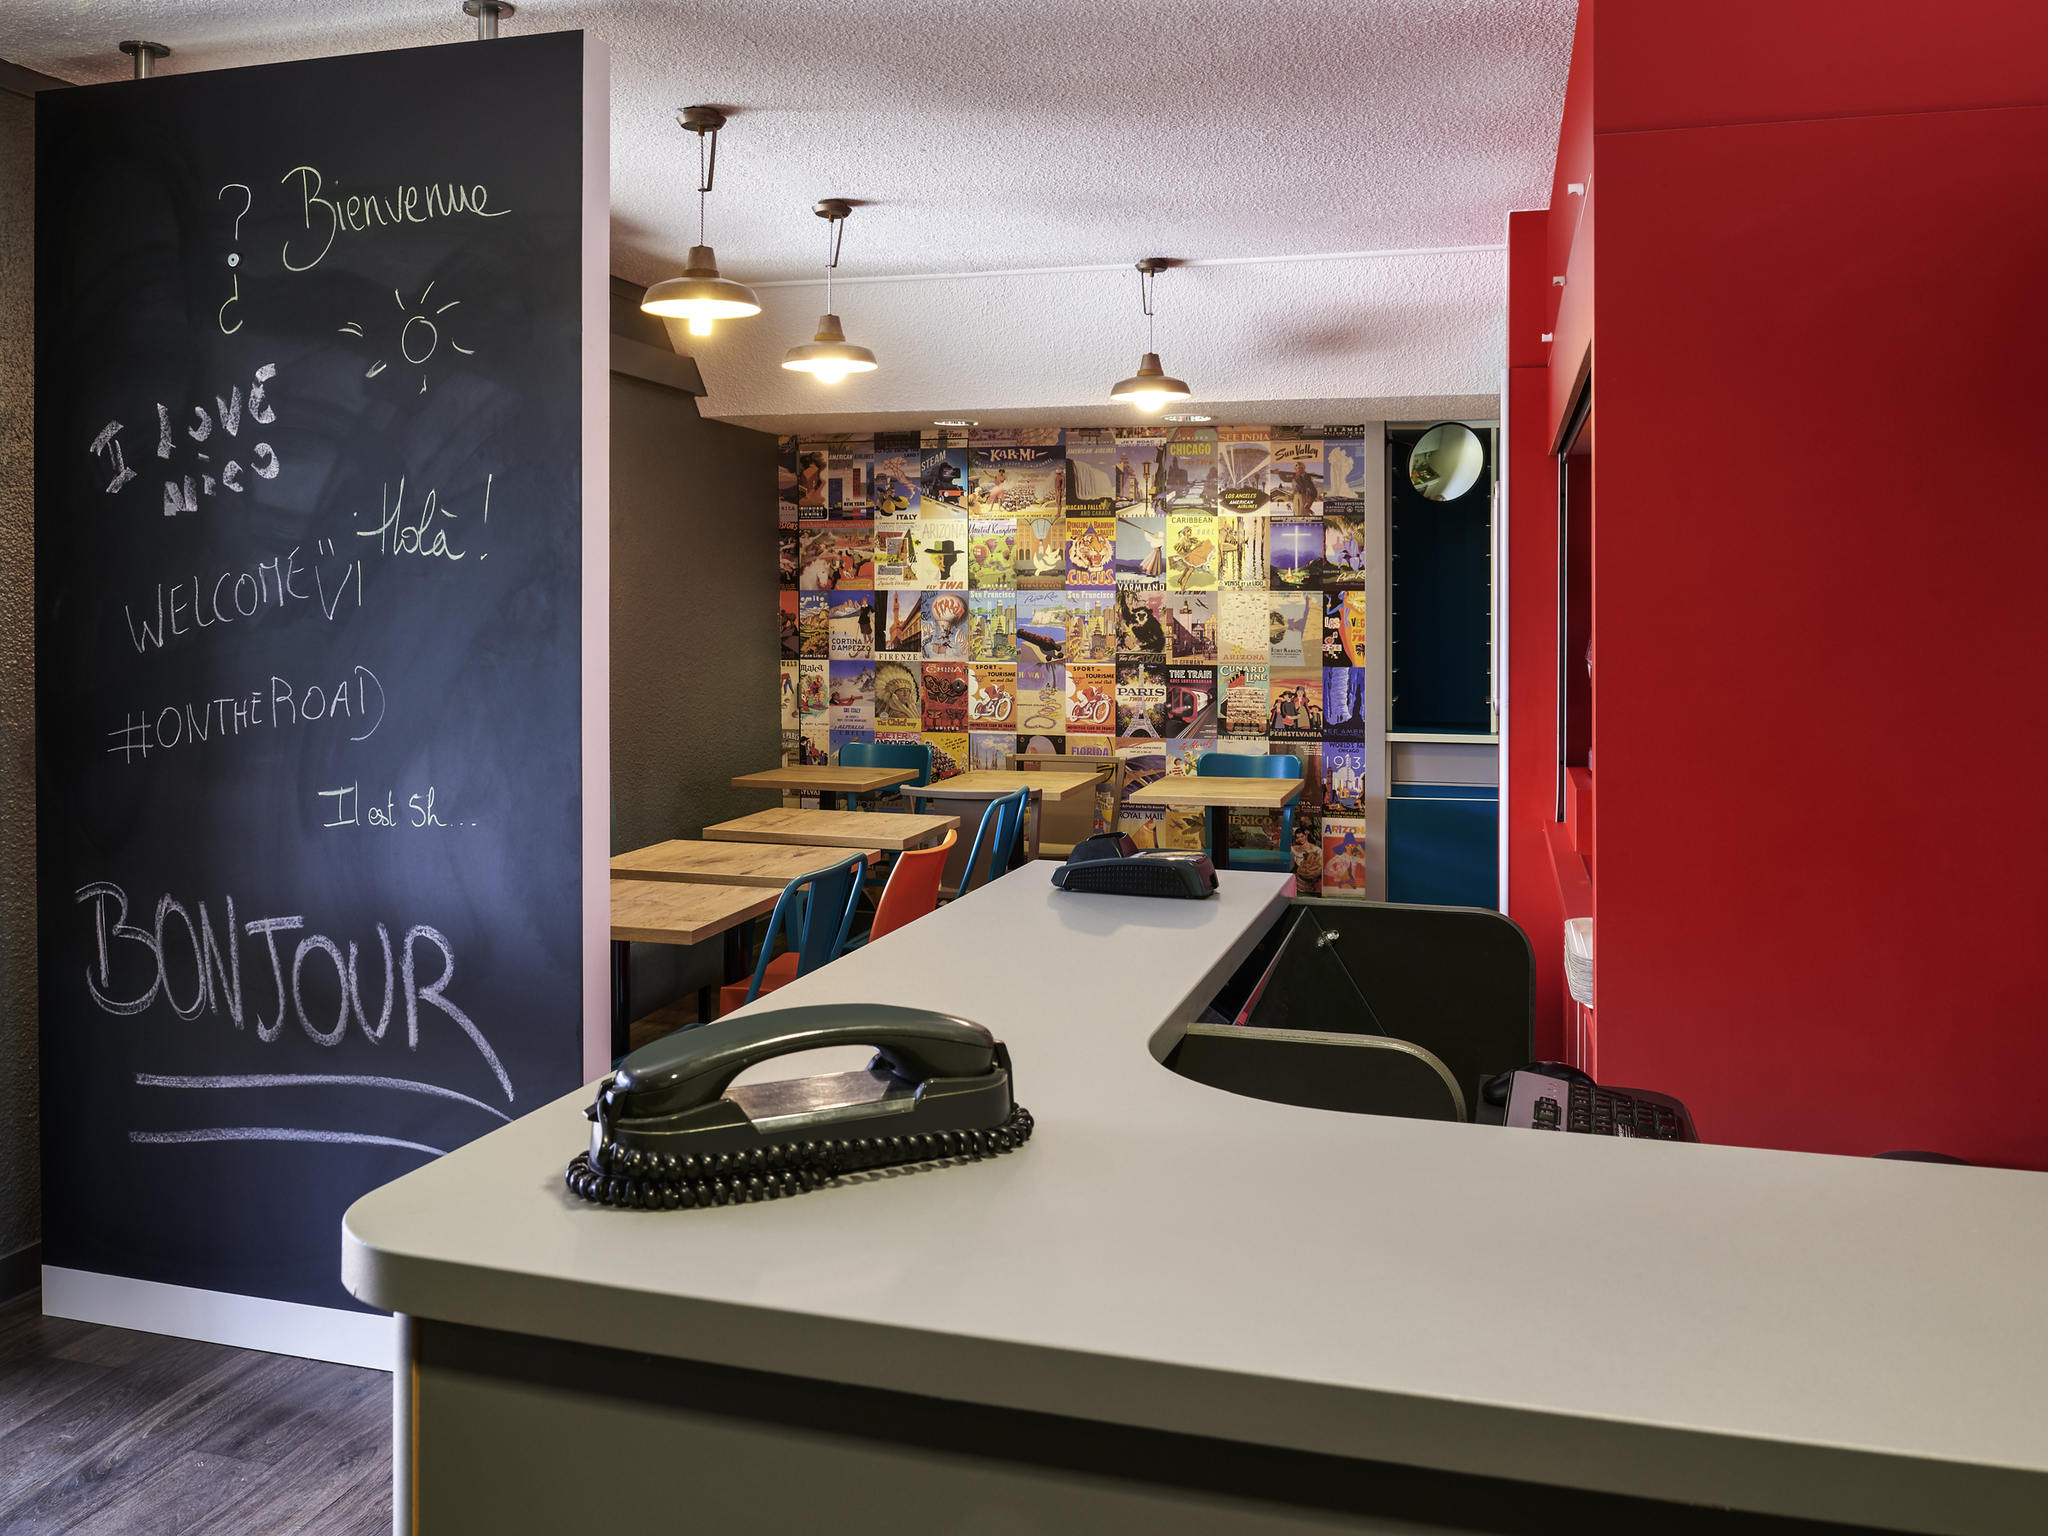 Hotel - hotelF1 Toulouse Airport